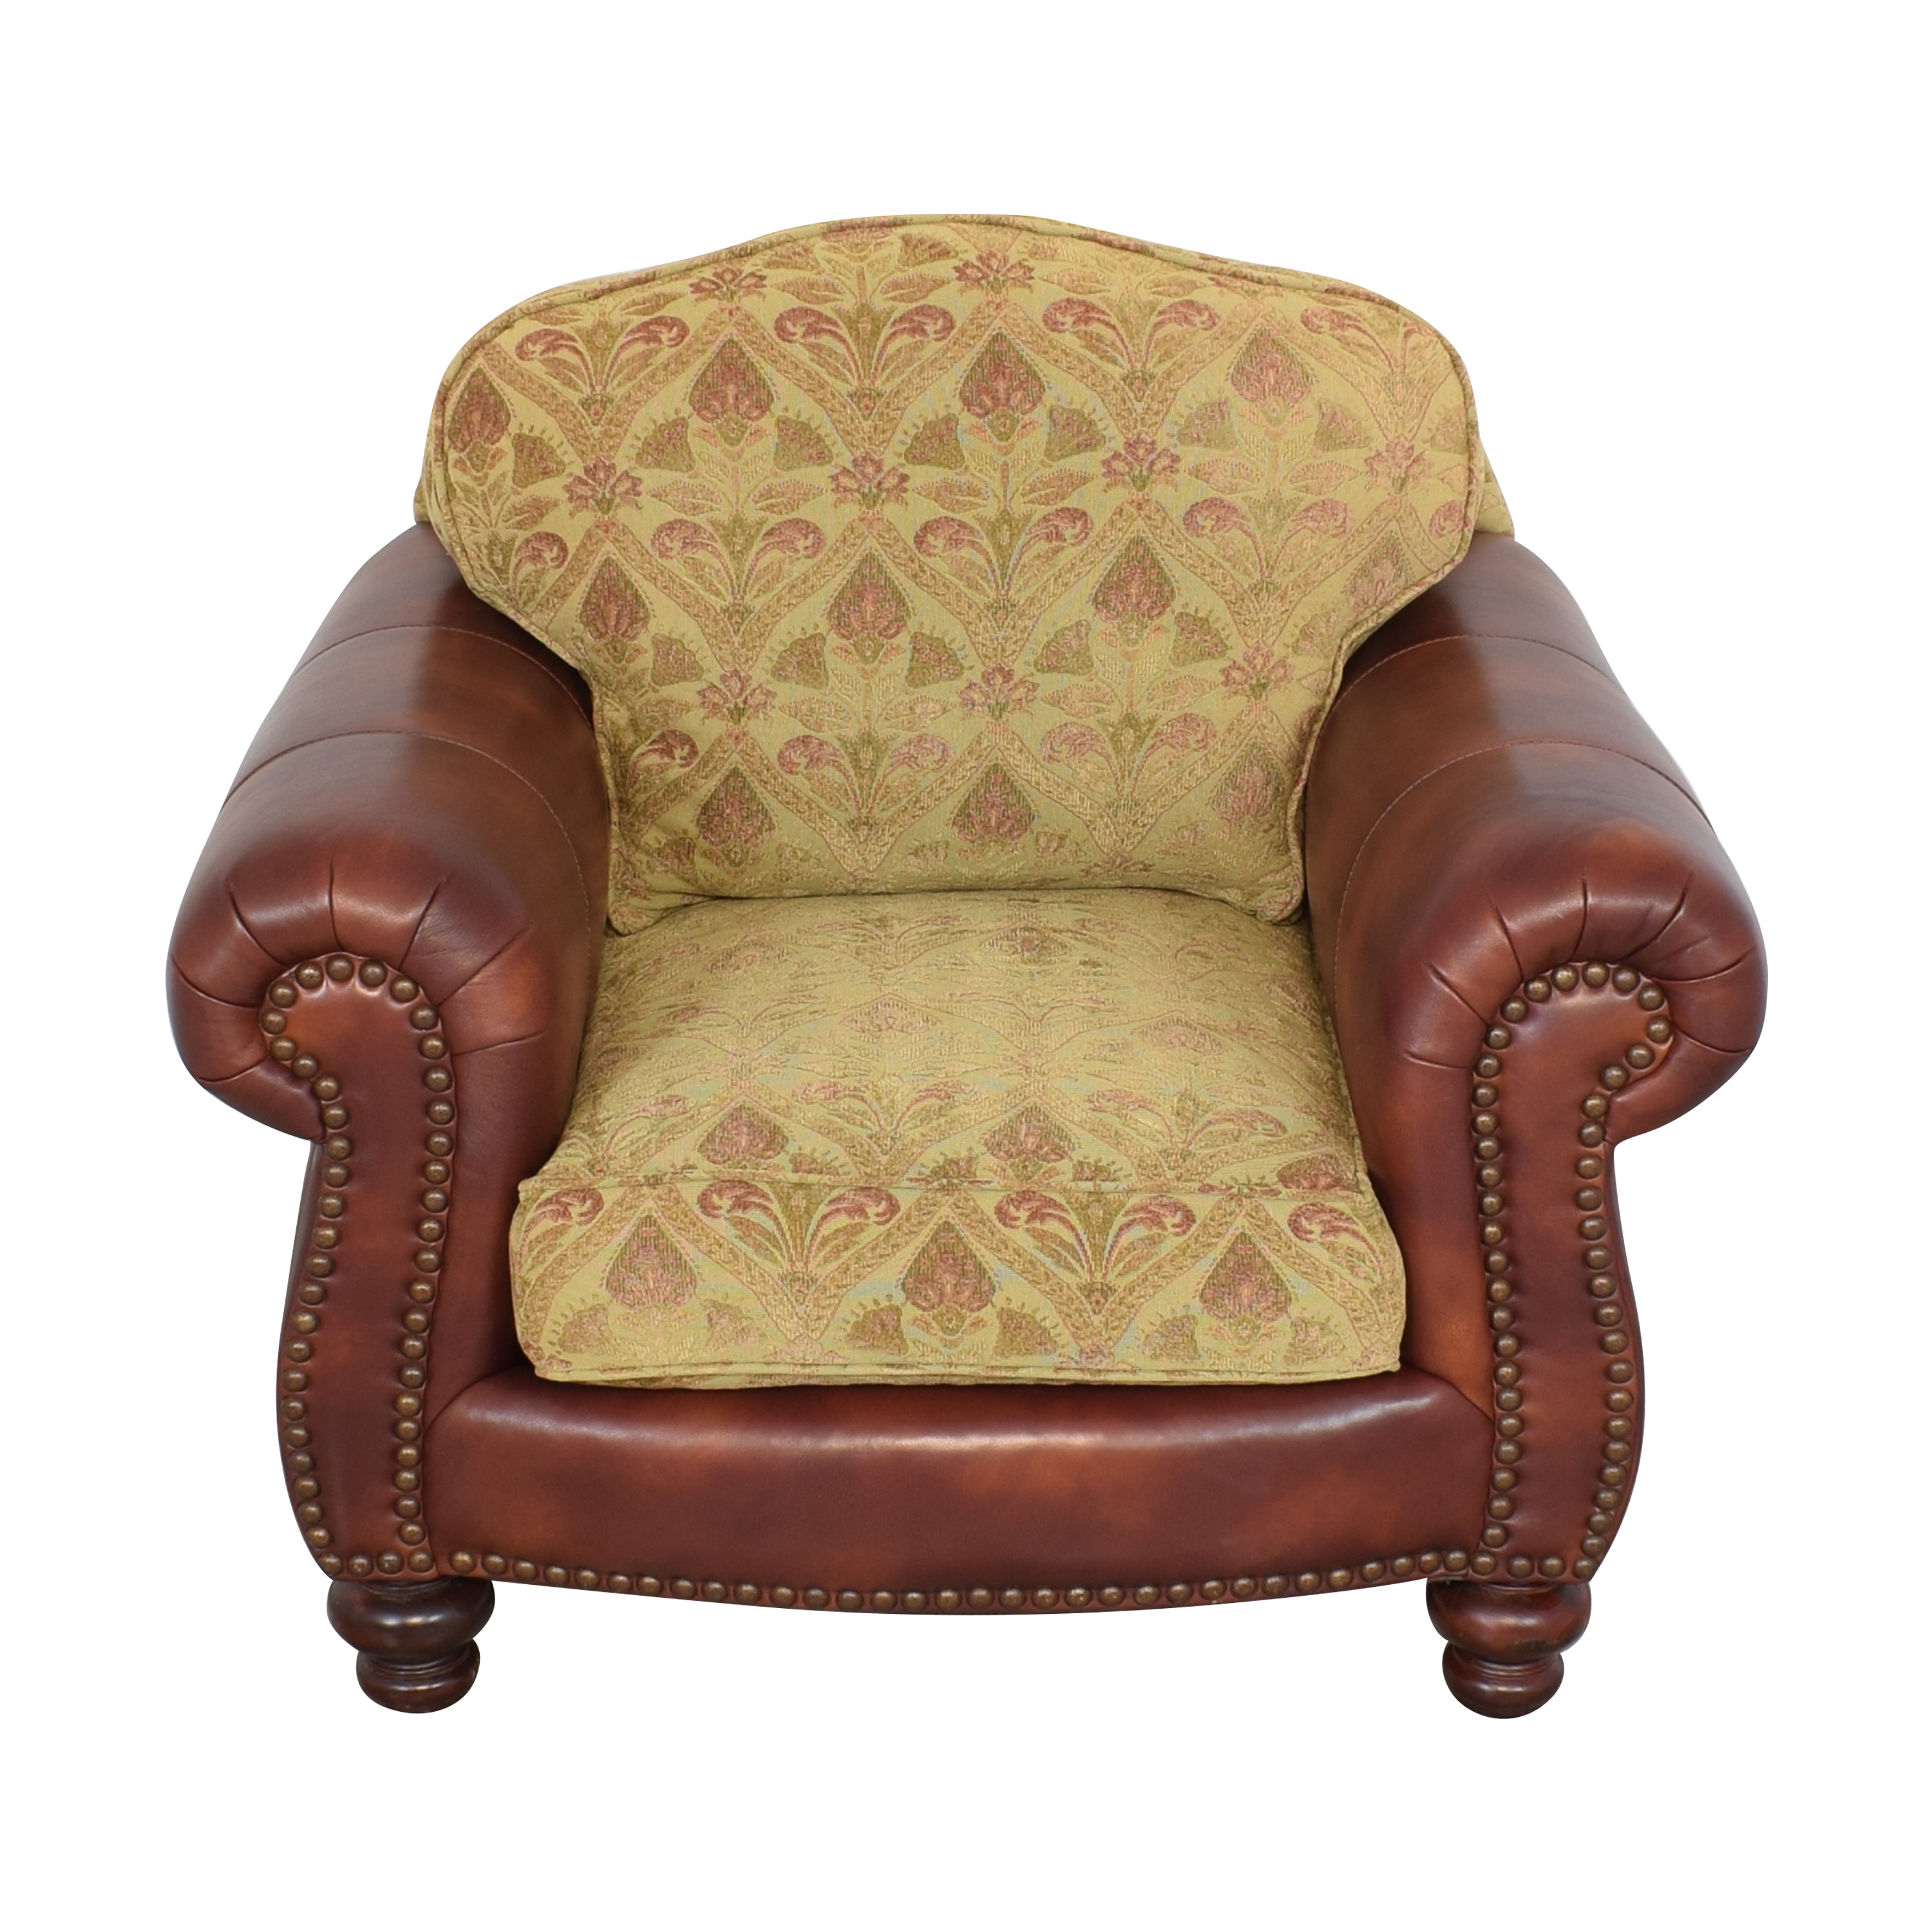 Distinctions Furniture Distinctions Furniture Nailhead Club Chair with Cushions used